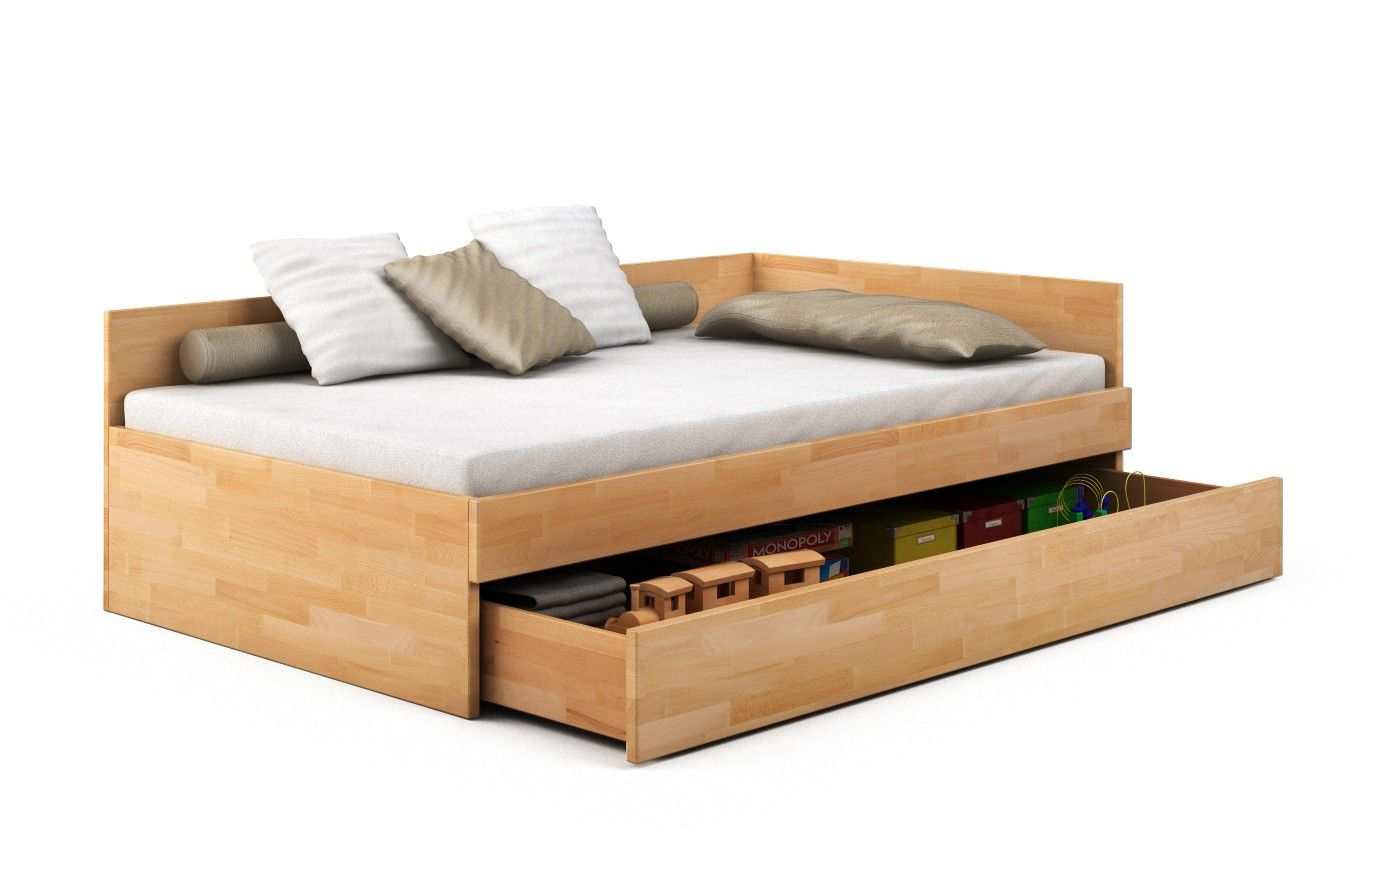 Bett Fiona 120x200 Bett Buche Tigre Massivholz Pv 120 X 200 Cm Nein For The Home